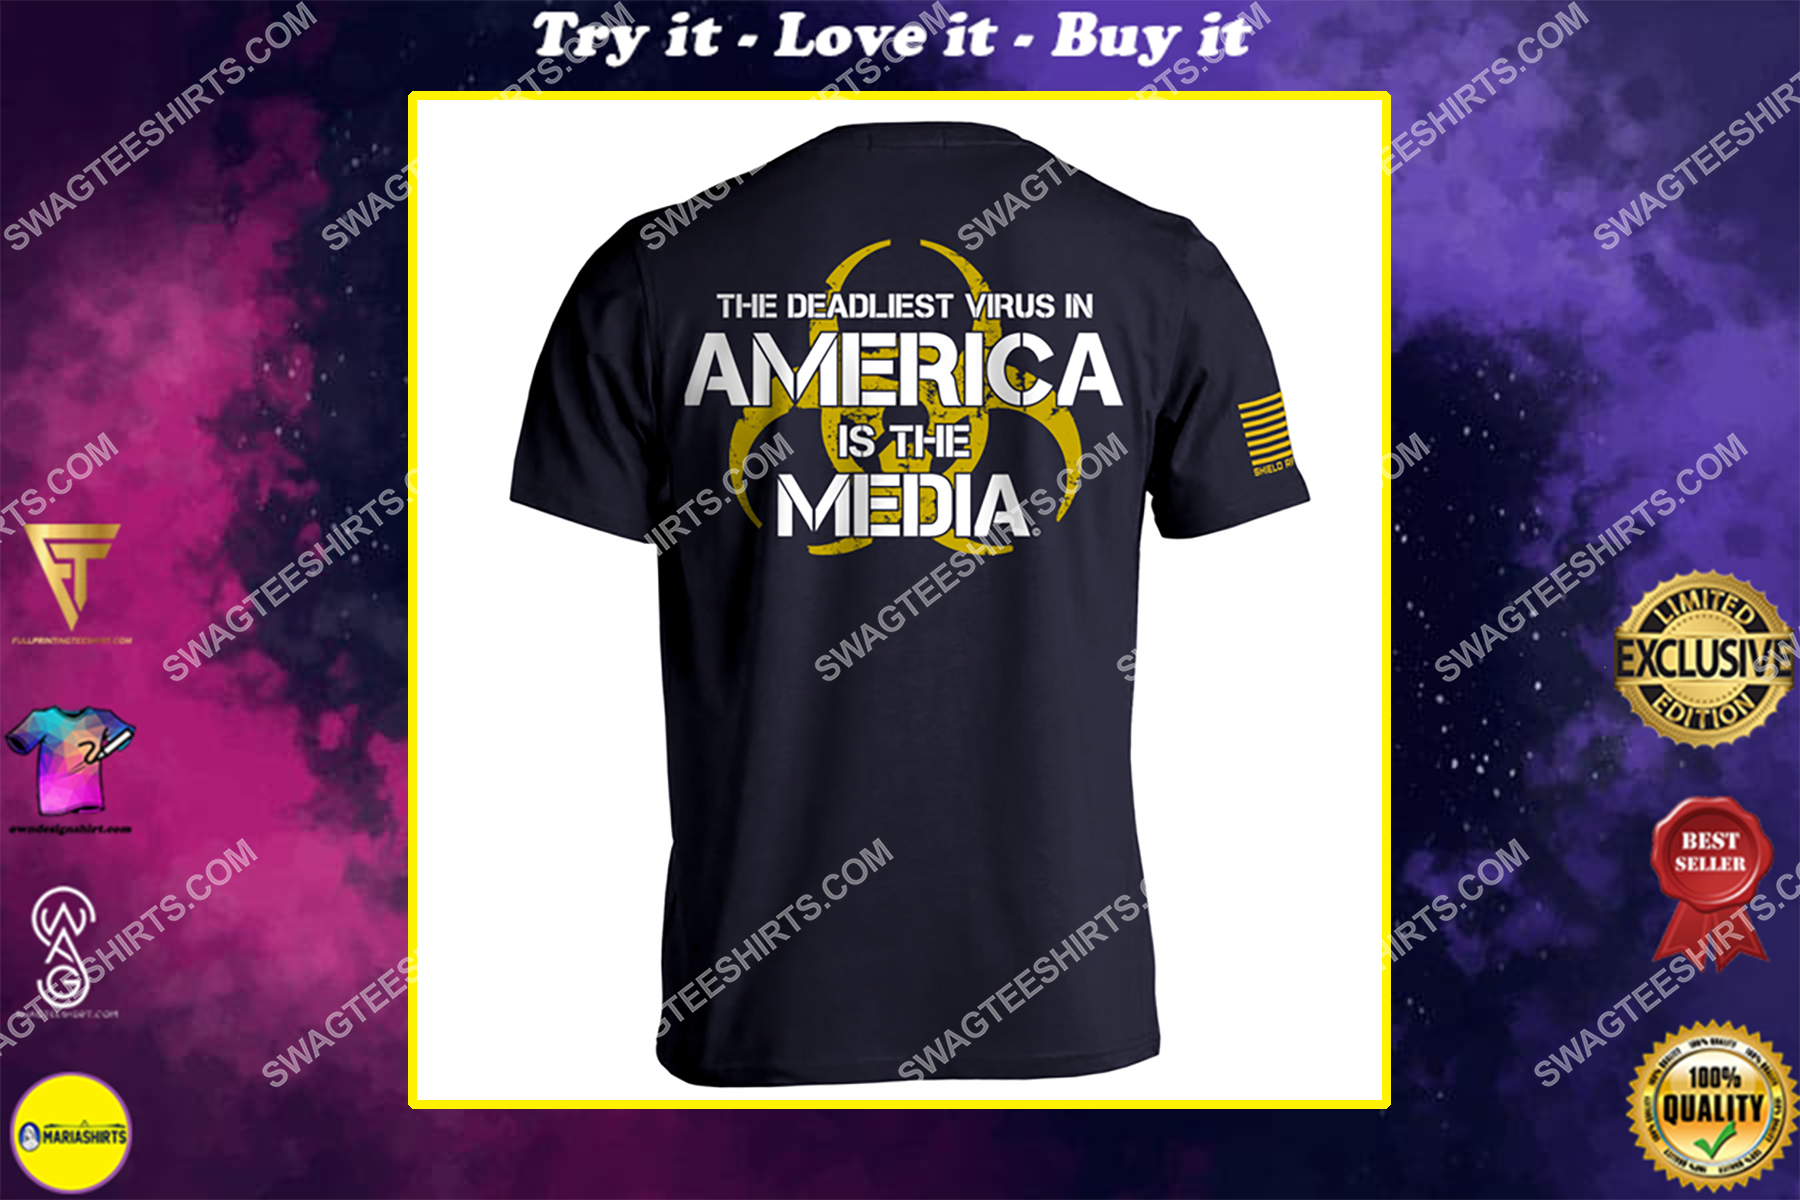 the deadliest virus in america is the media political shirt